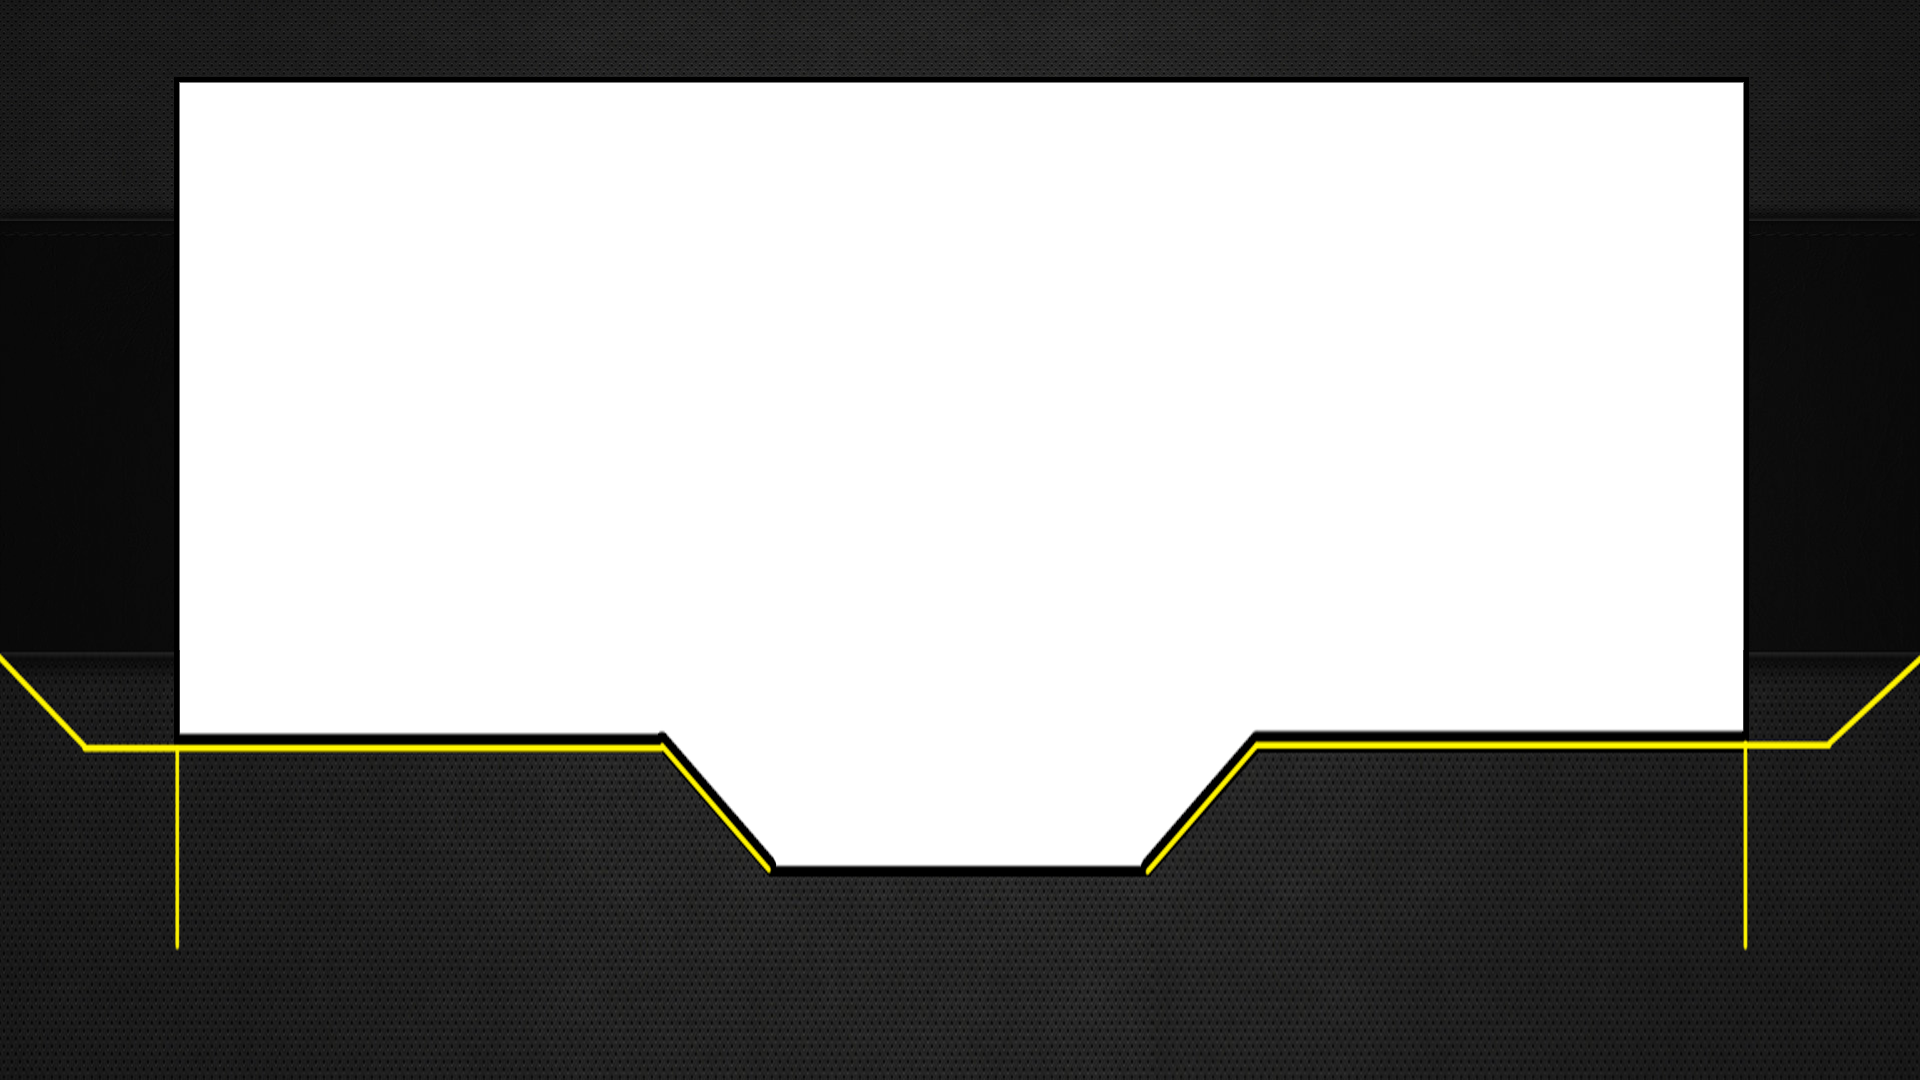 Gaming overlay png. Ds futuristic incomplete